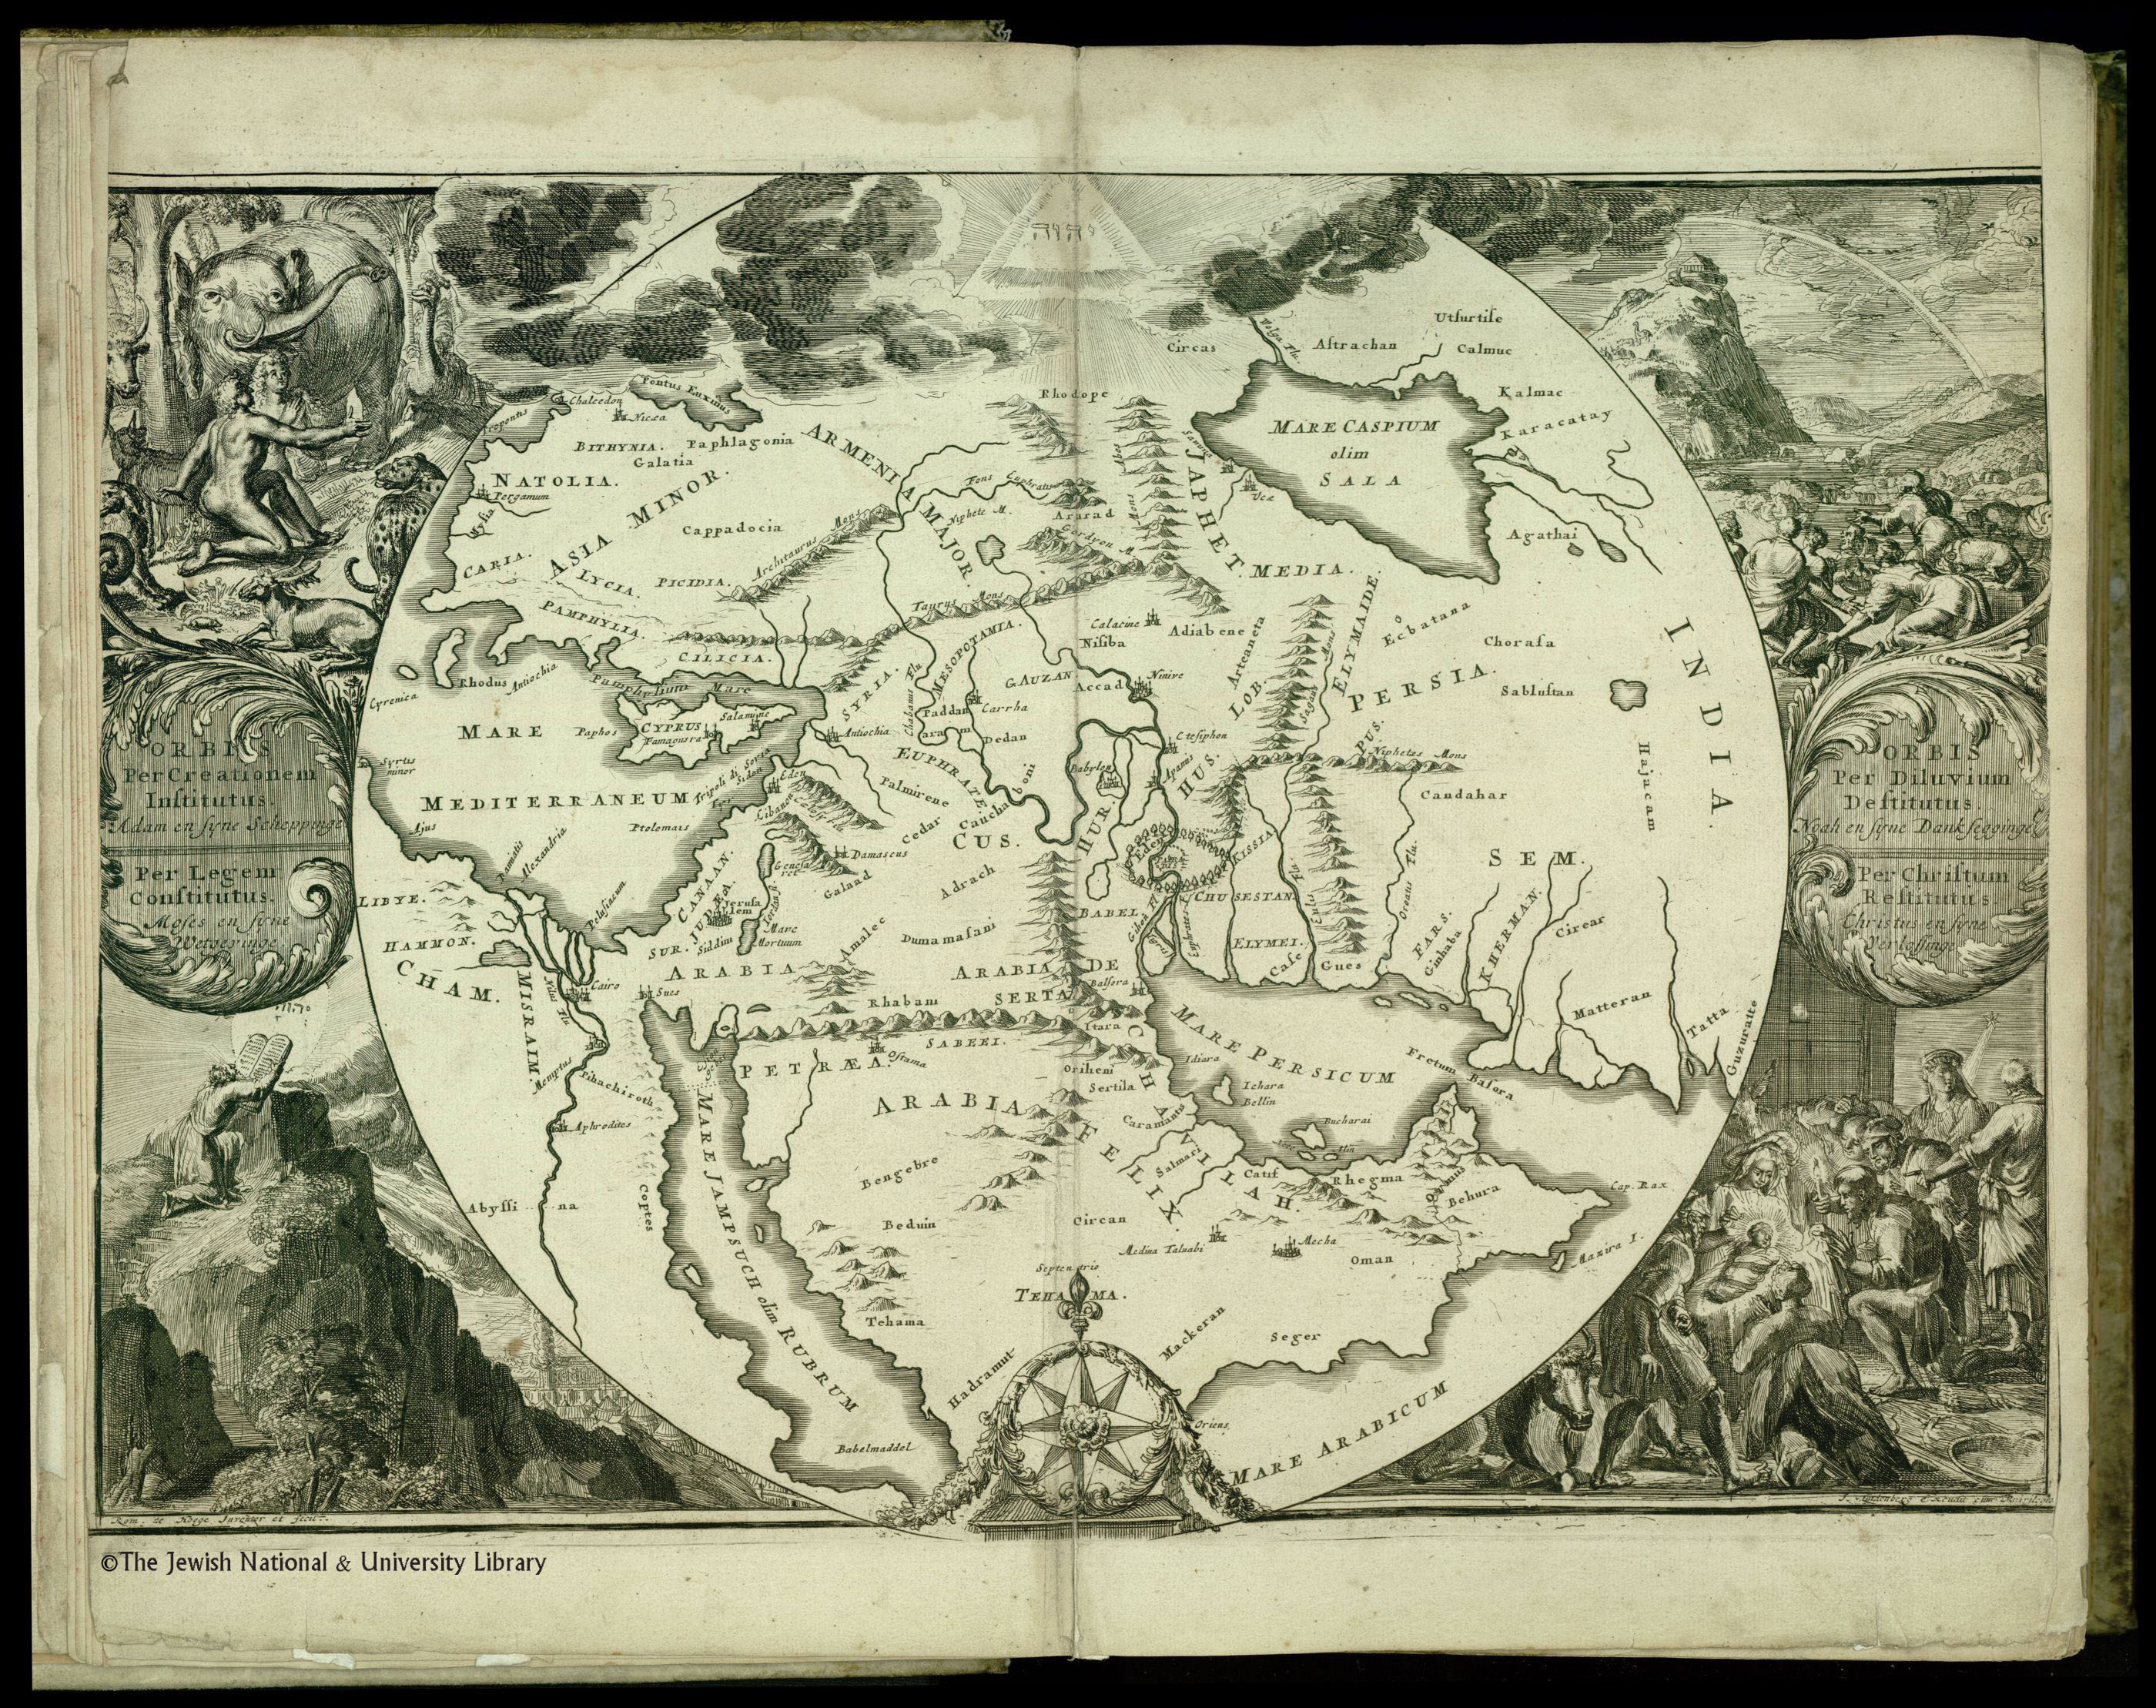 De Hooghe S Map Babylon Paradise Desert As Centre Of Biblical Lands